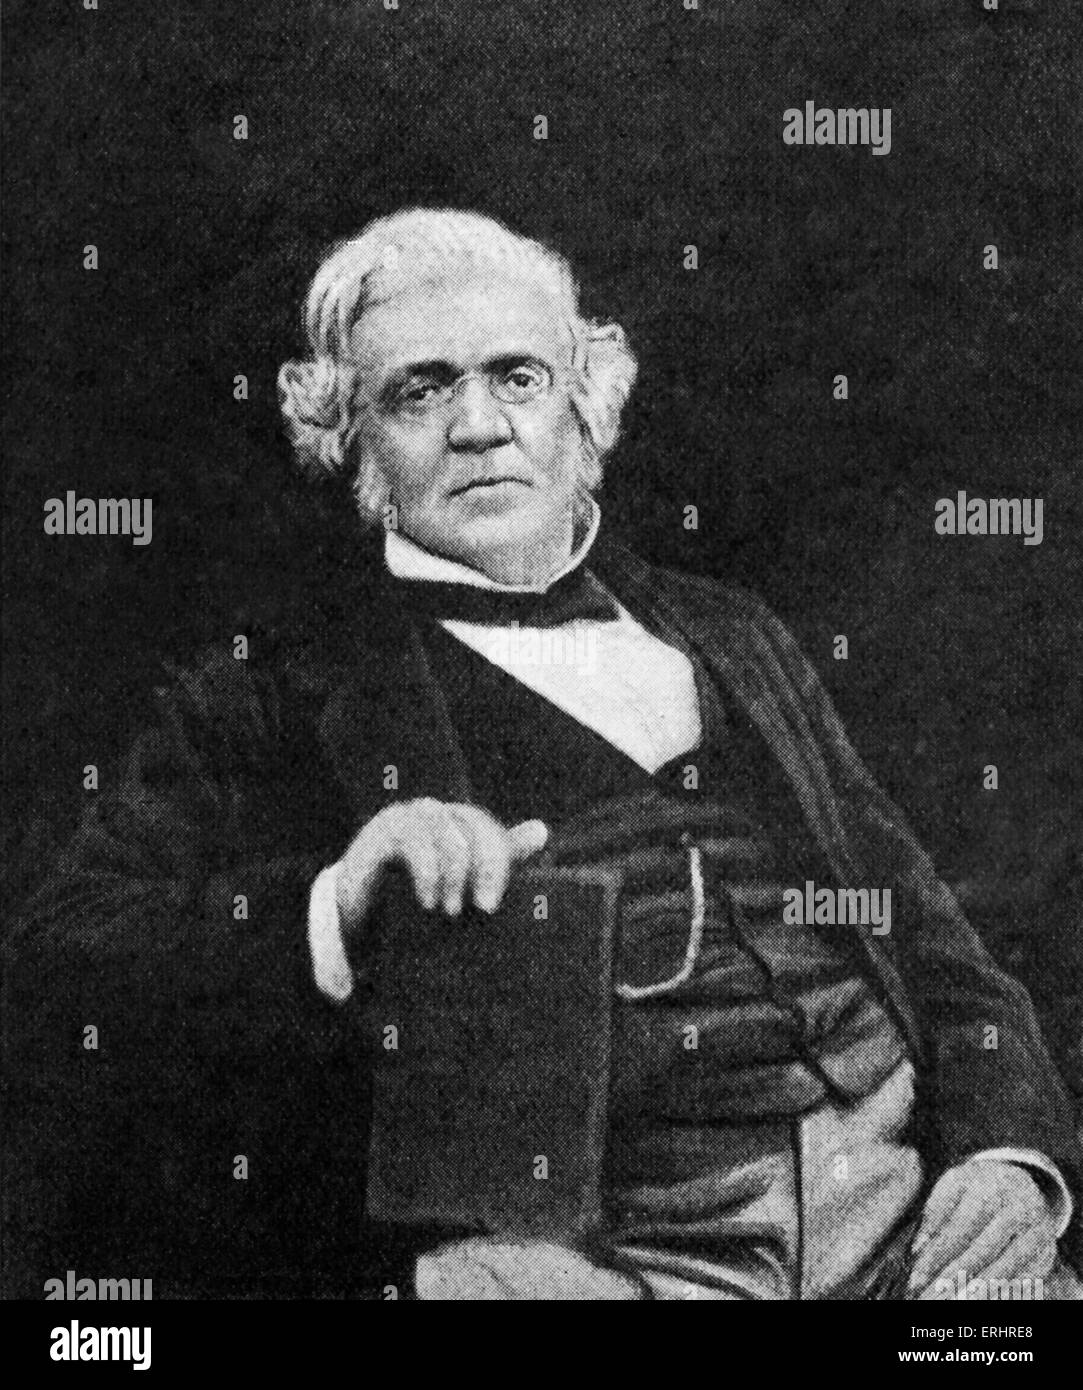 William Makepeace Thackeray - English novelist, 18 July 1811 - 24 December 1863. - Stock Image